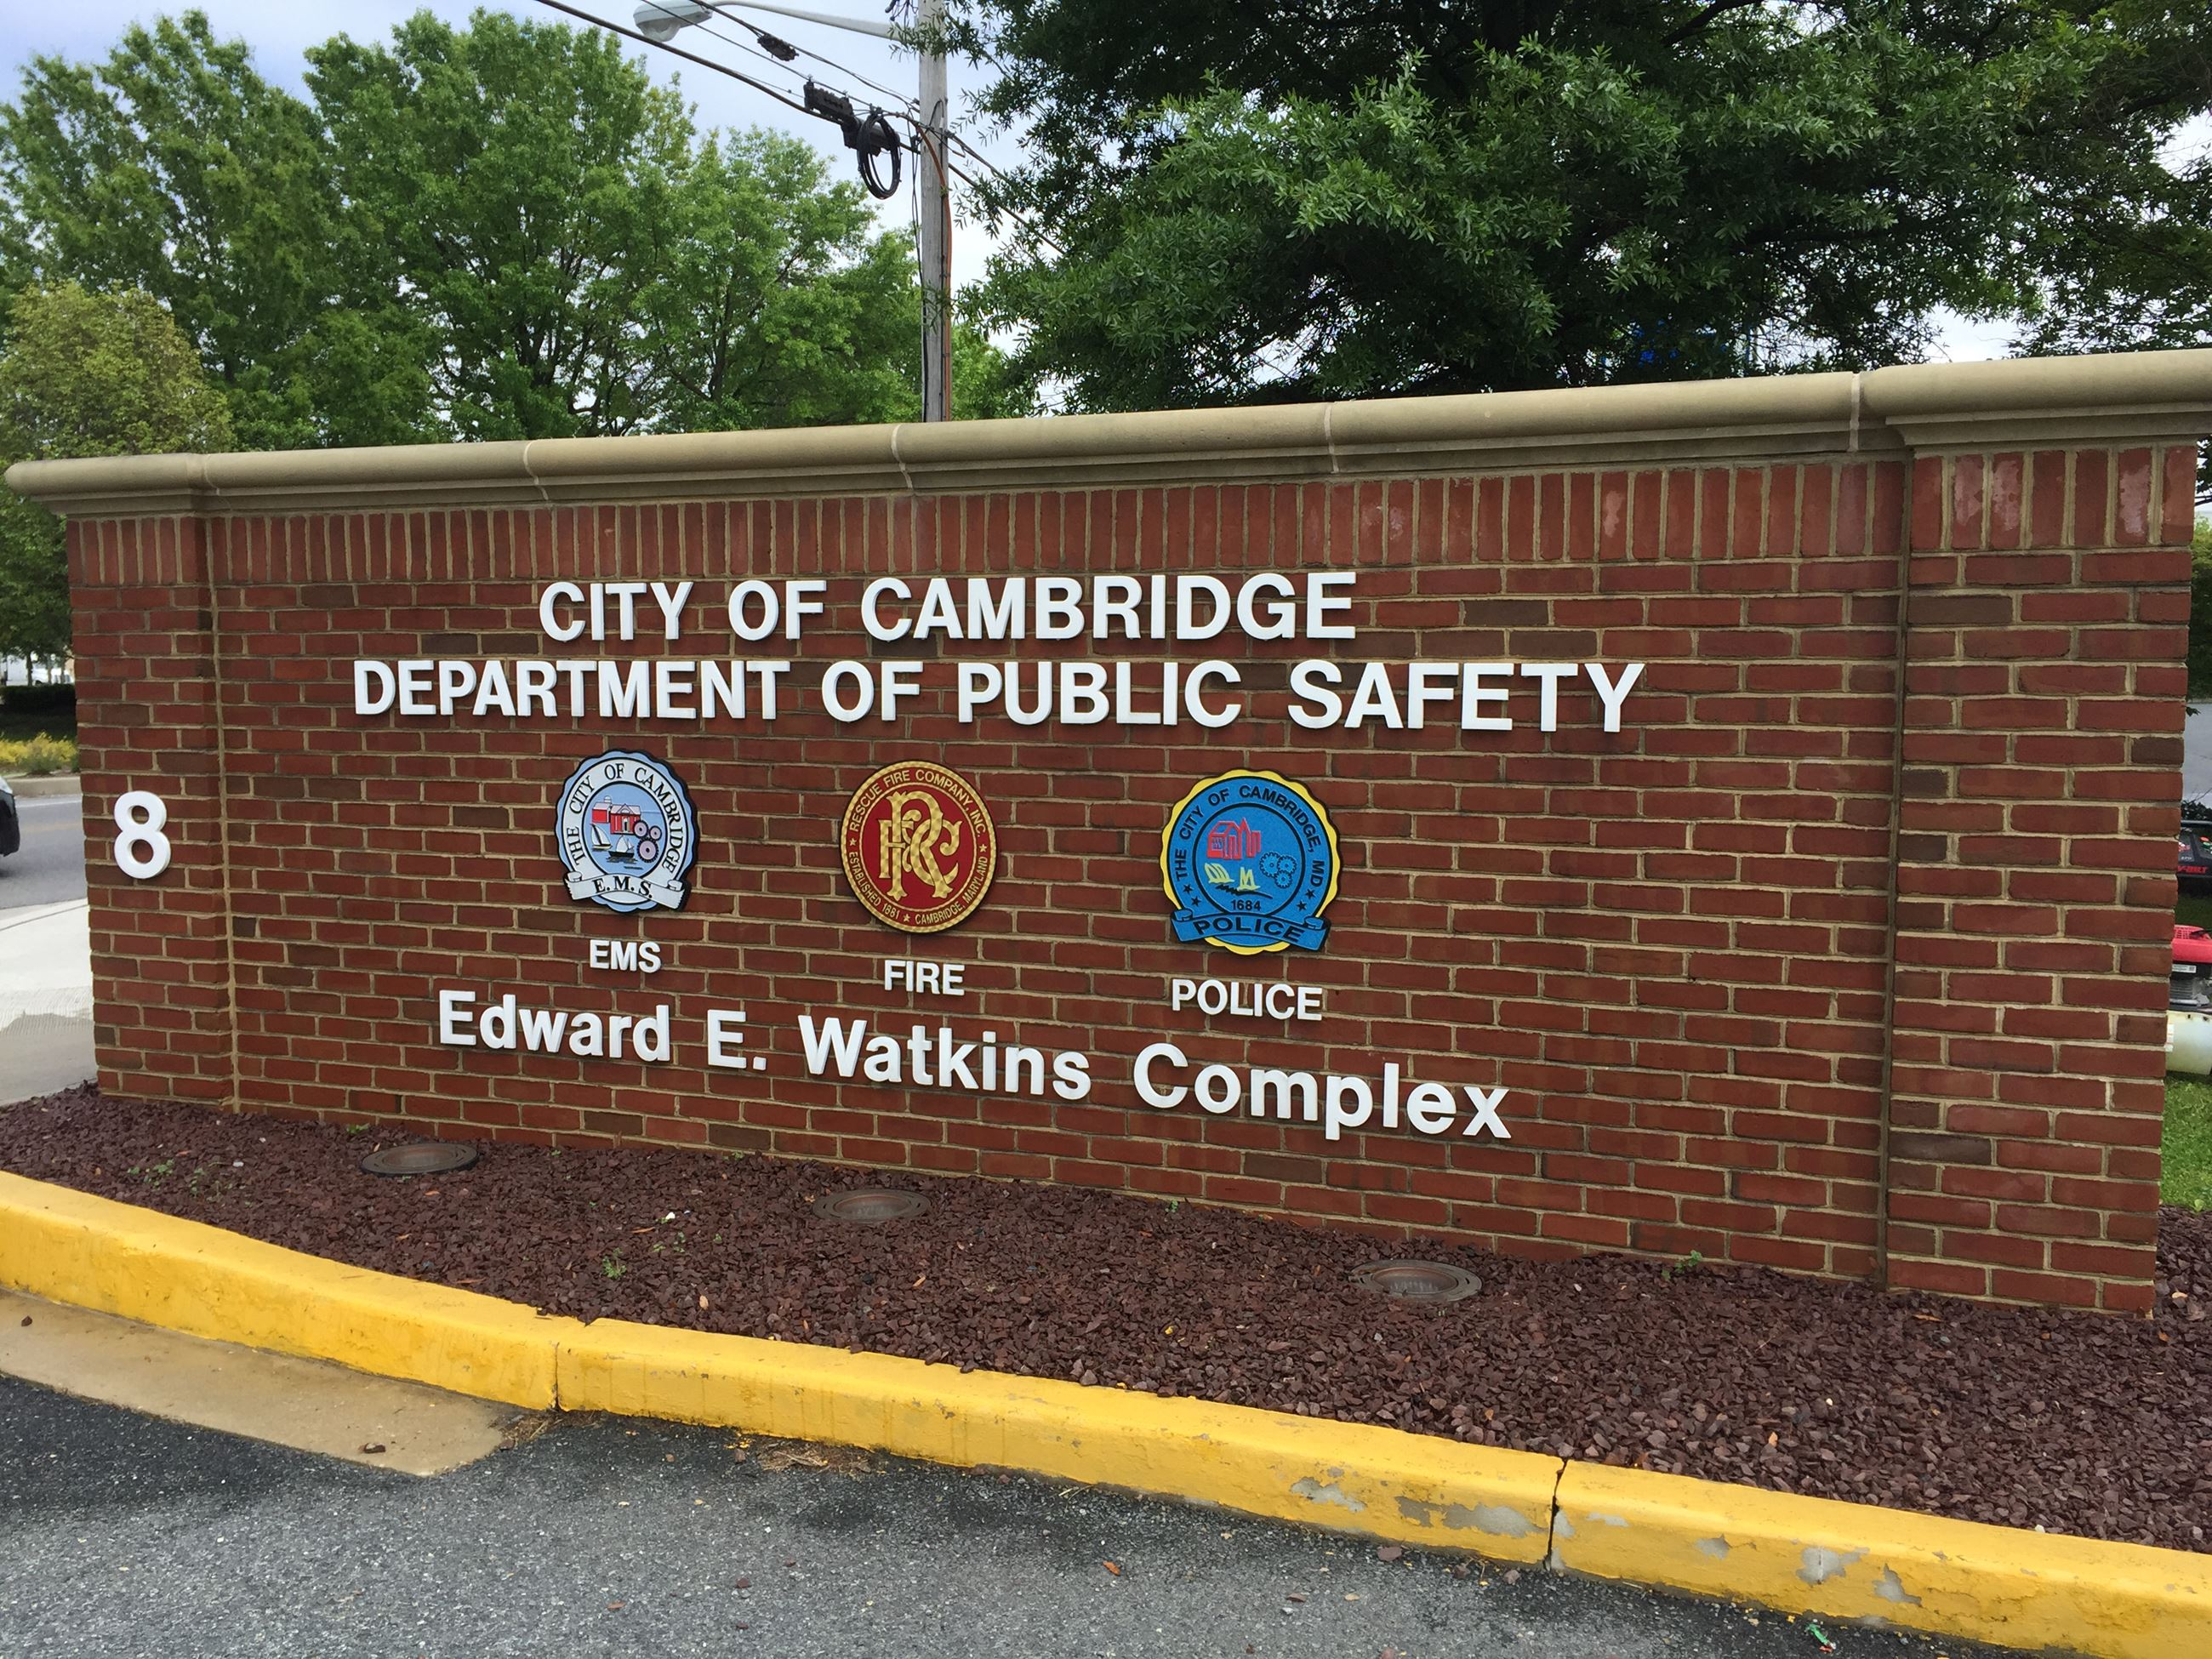 City of Cambridge Department of Public Safety Wall